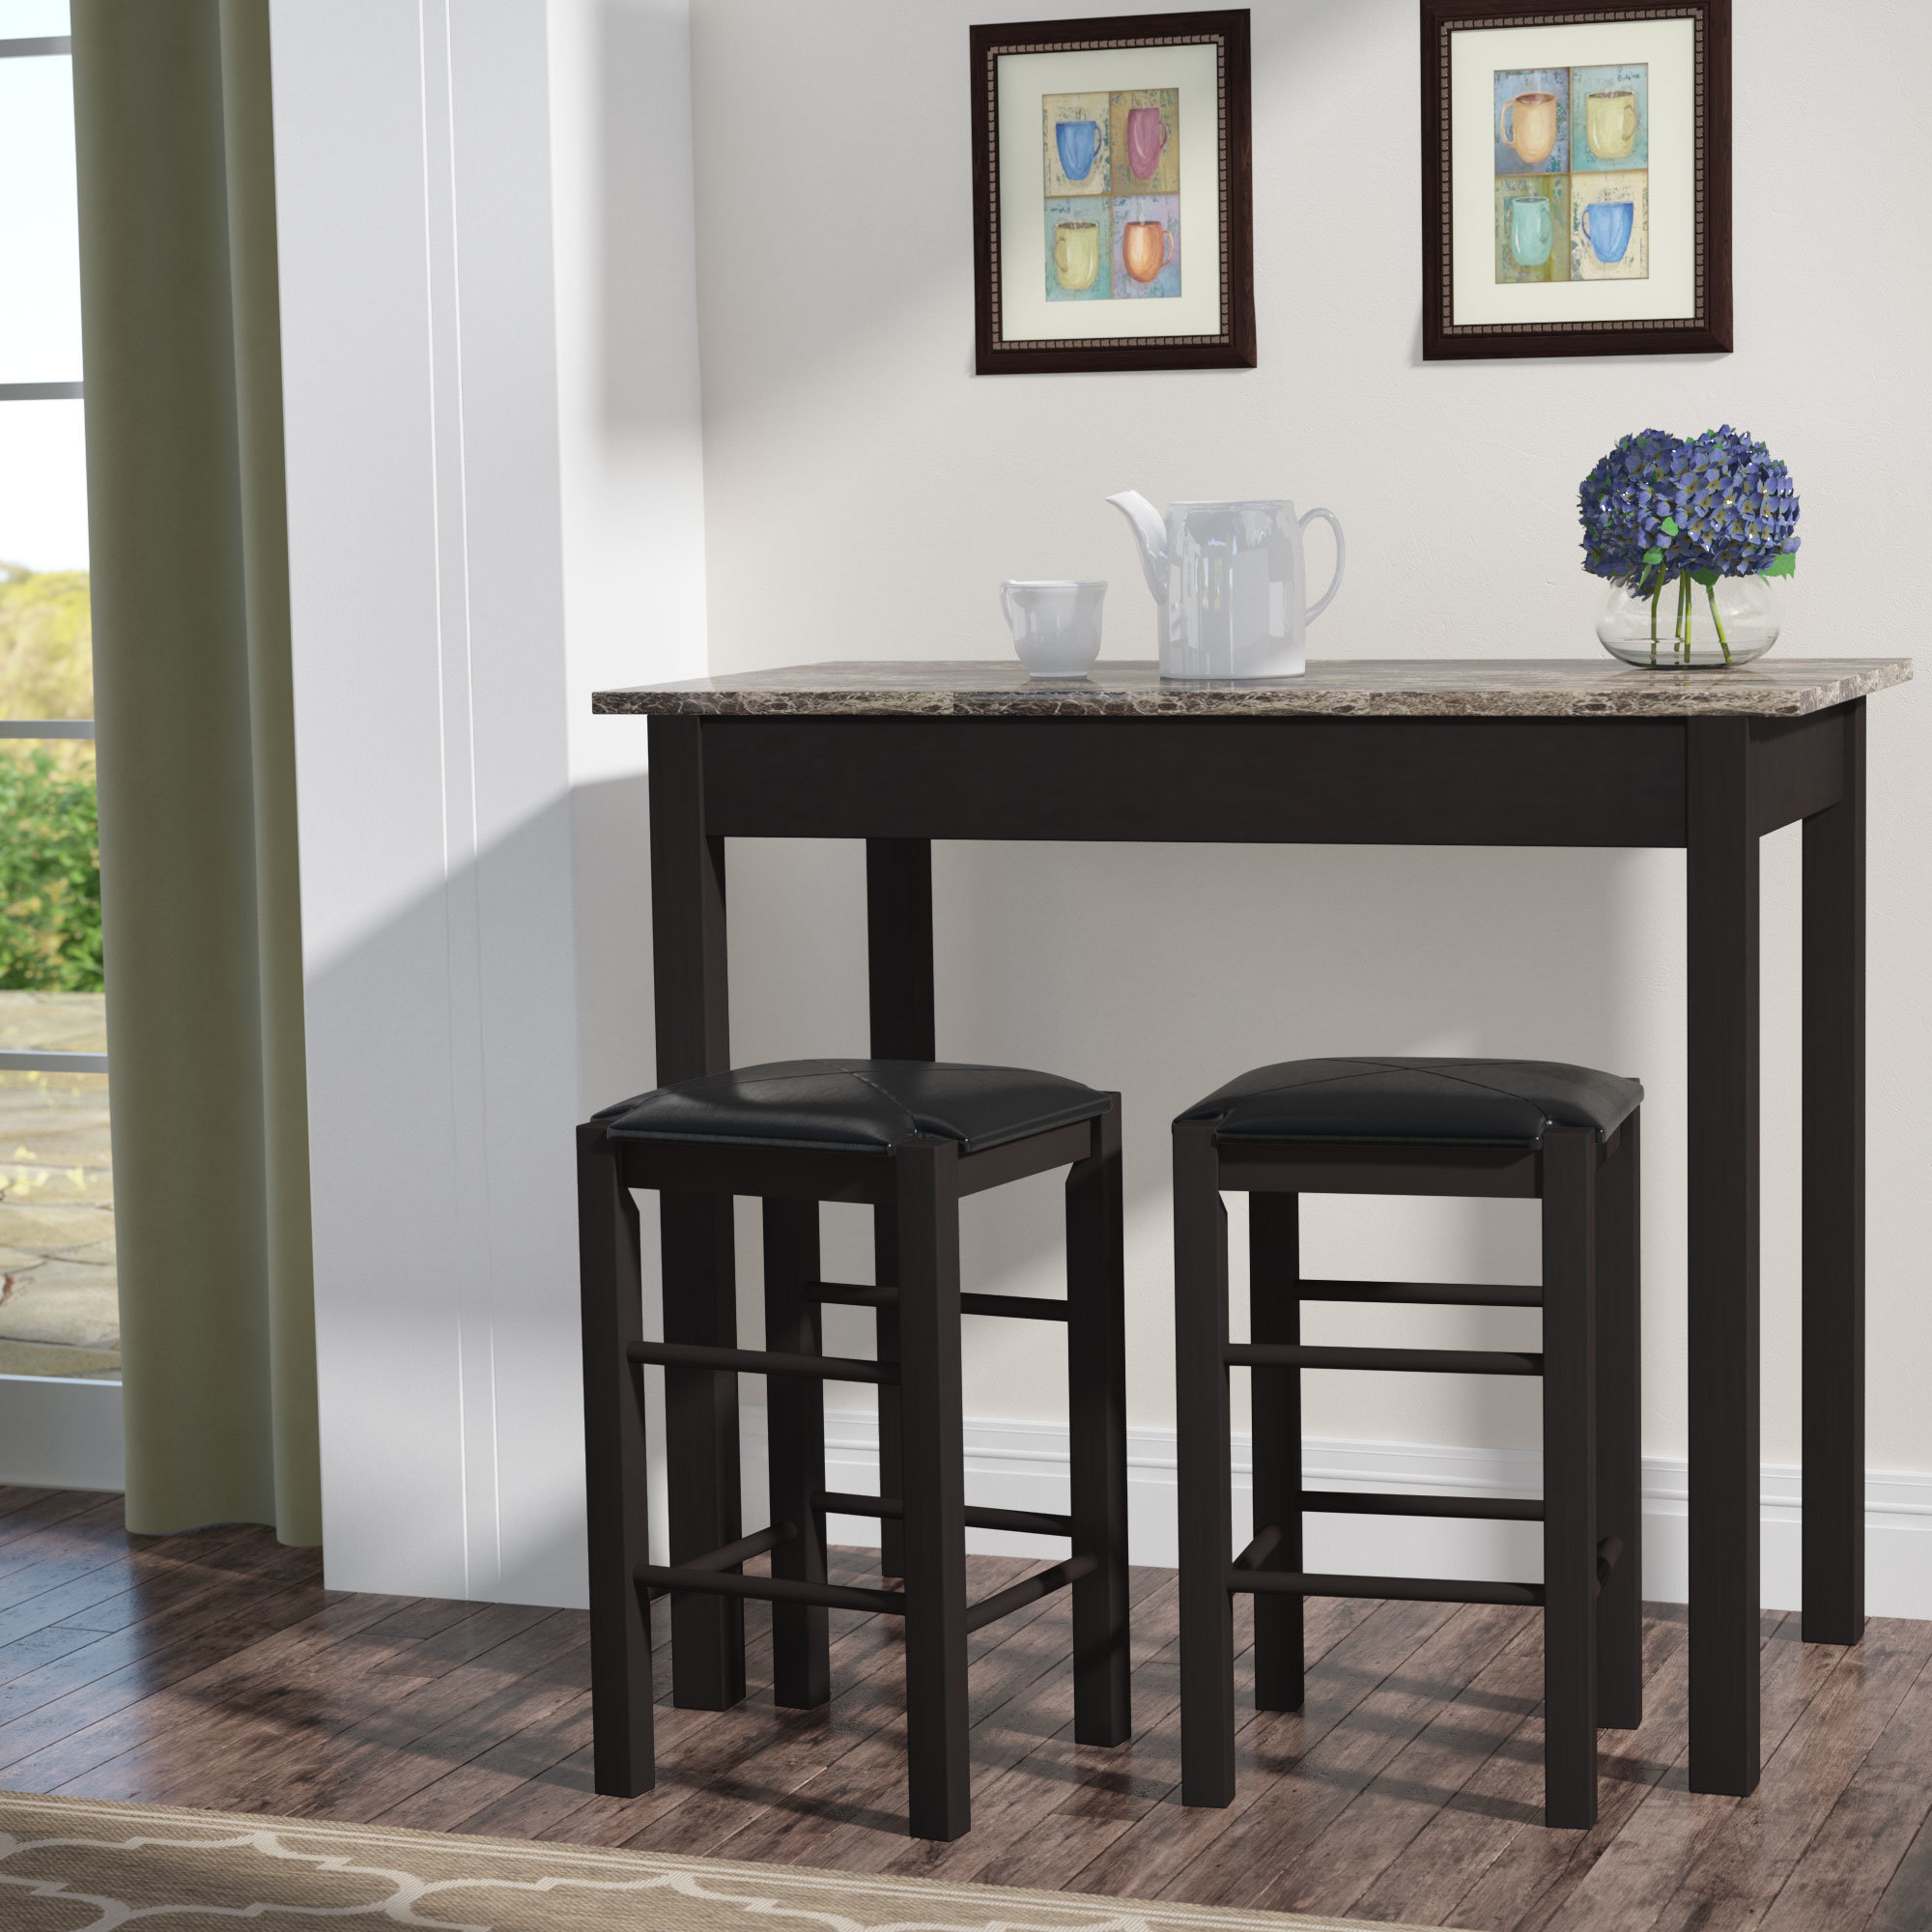 Famous Winston Porter Sheetz 3 Piece Counter Height Dining Set & Reviews Throughout Tenney 3 Piece Counter Height Dining Sets (View 14 of 25)